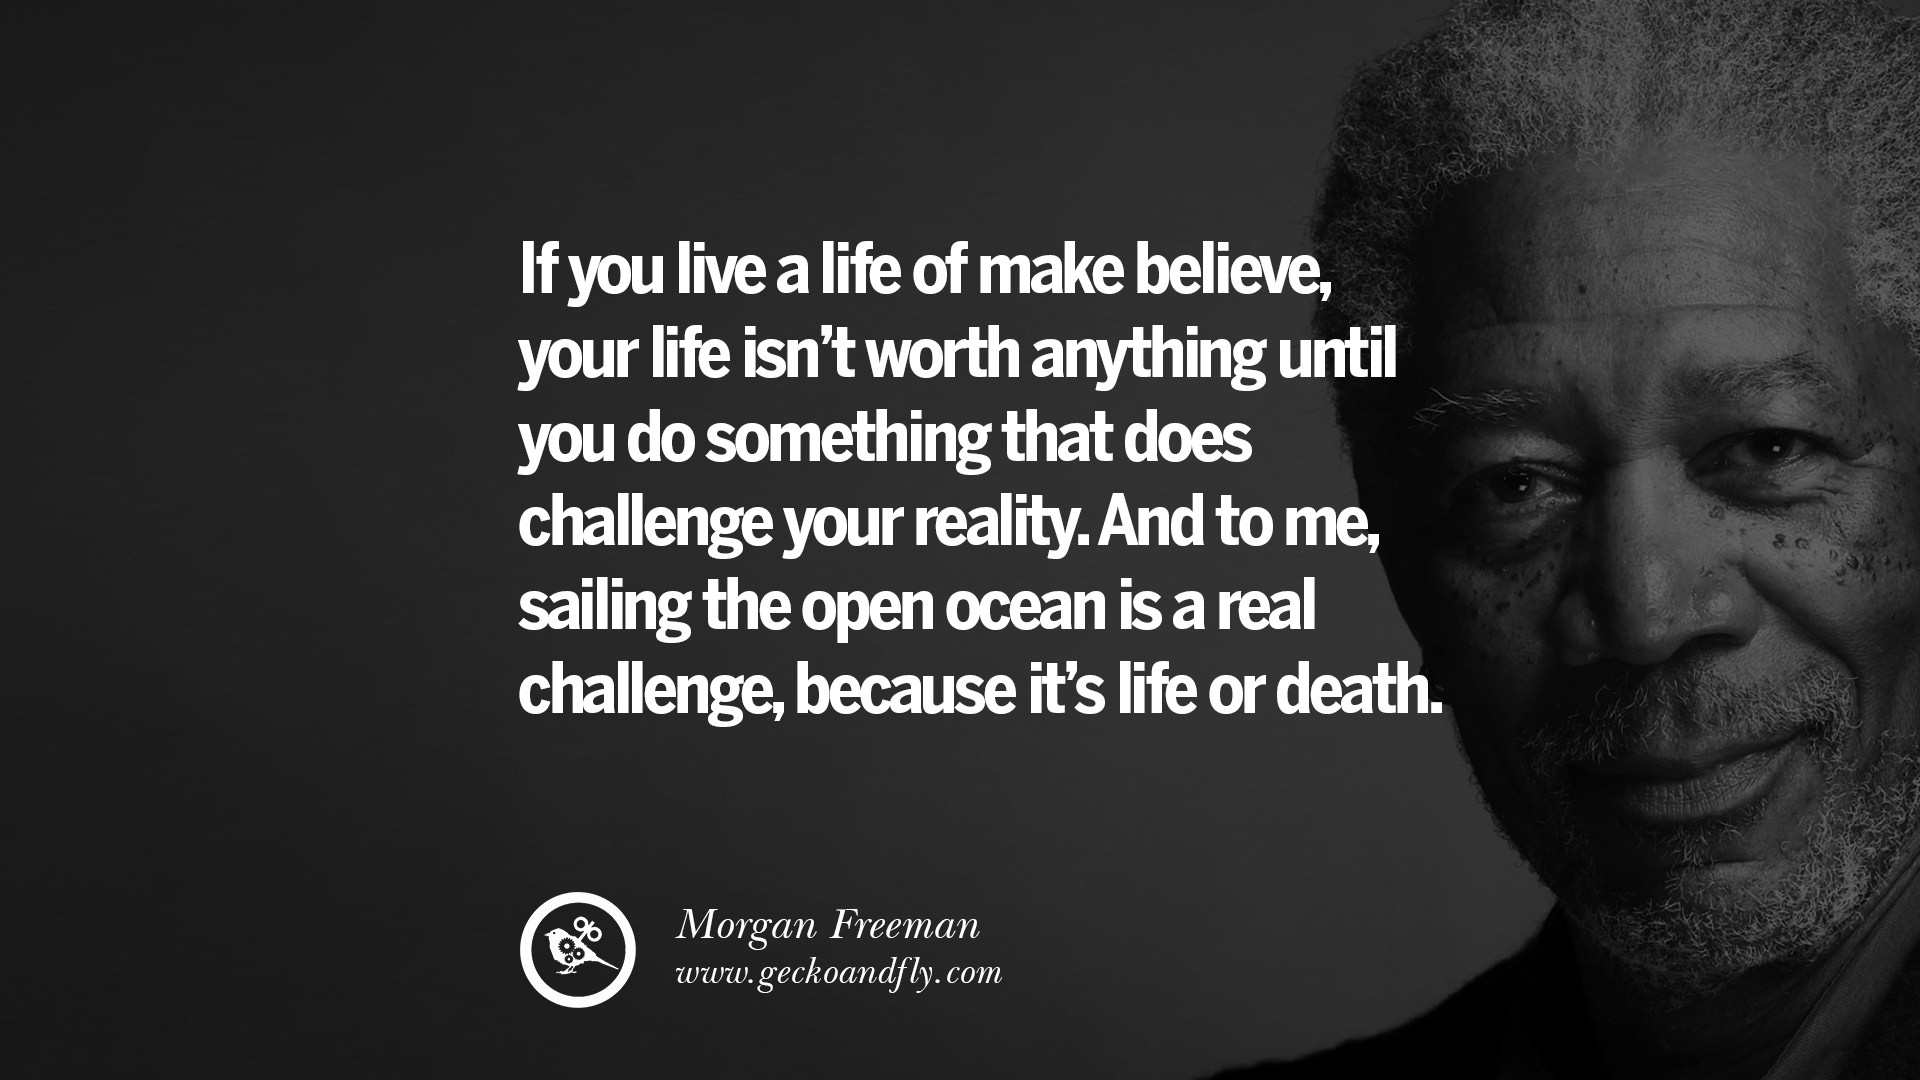 Quotes On 10 Morgan Freeman Quotes On Life Death Success And Struggle